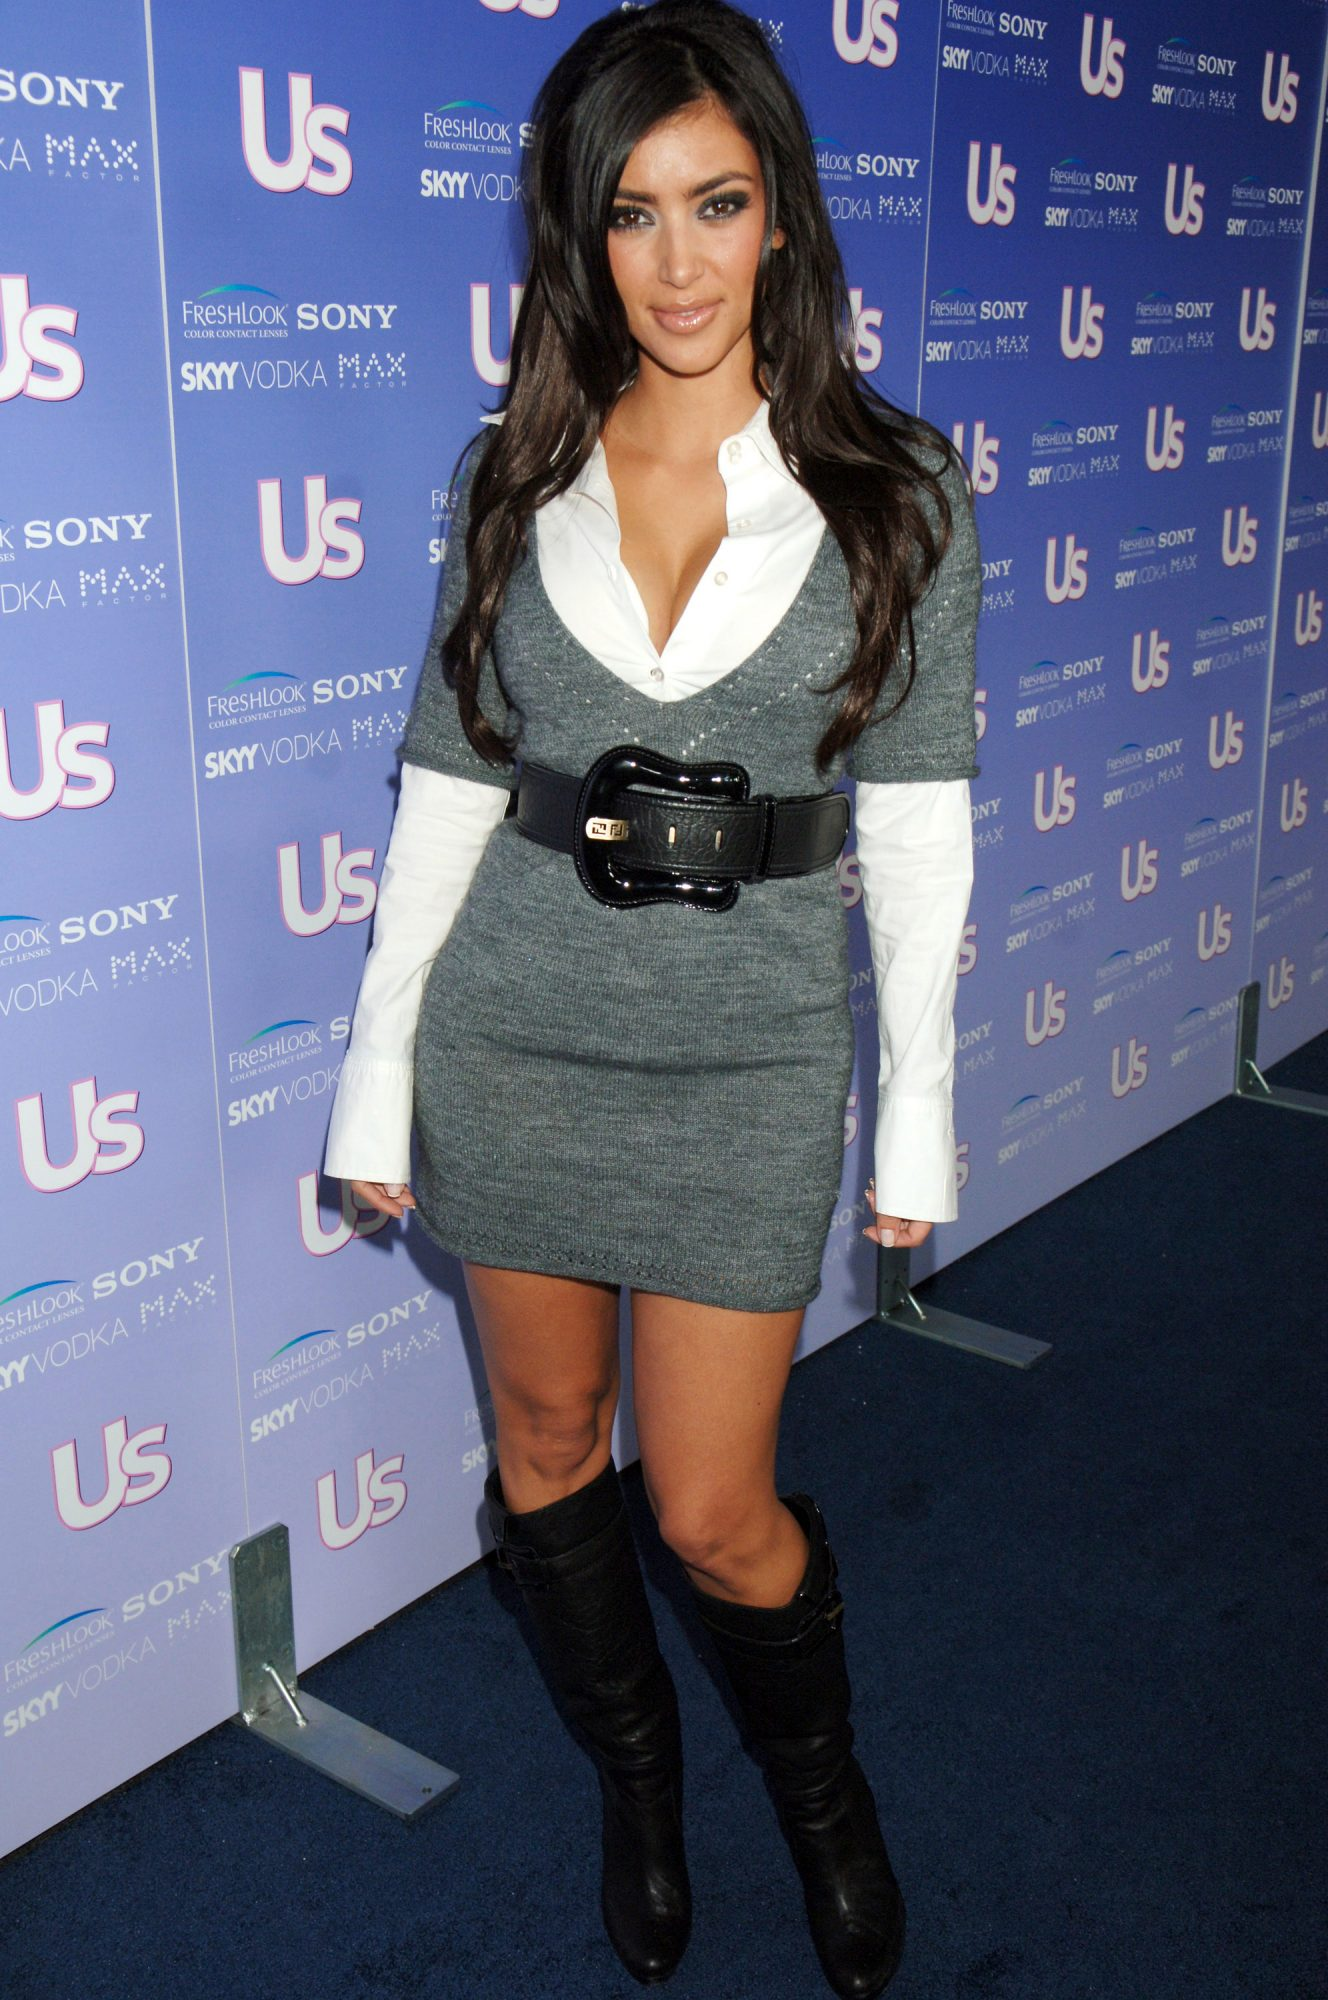 Kim Kardashian (Pre West) at US Weekly's Hot Hollywood Event in 2006